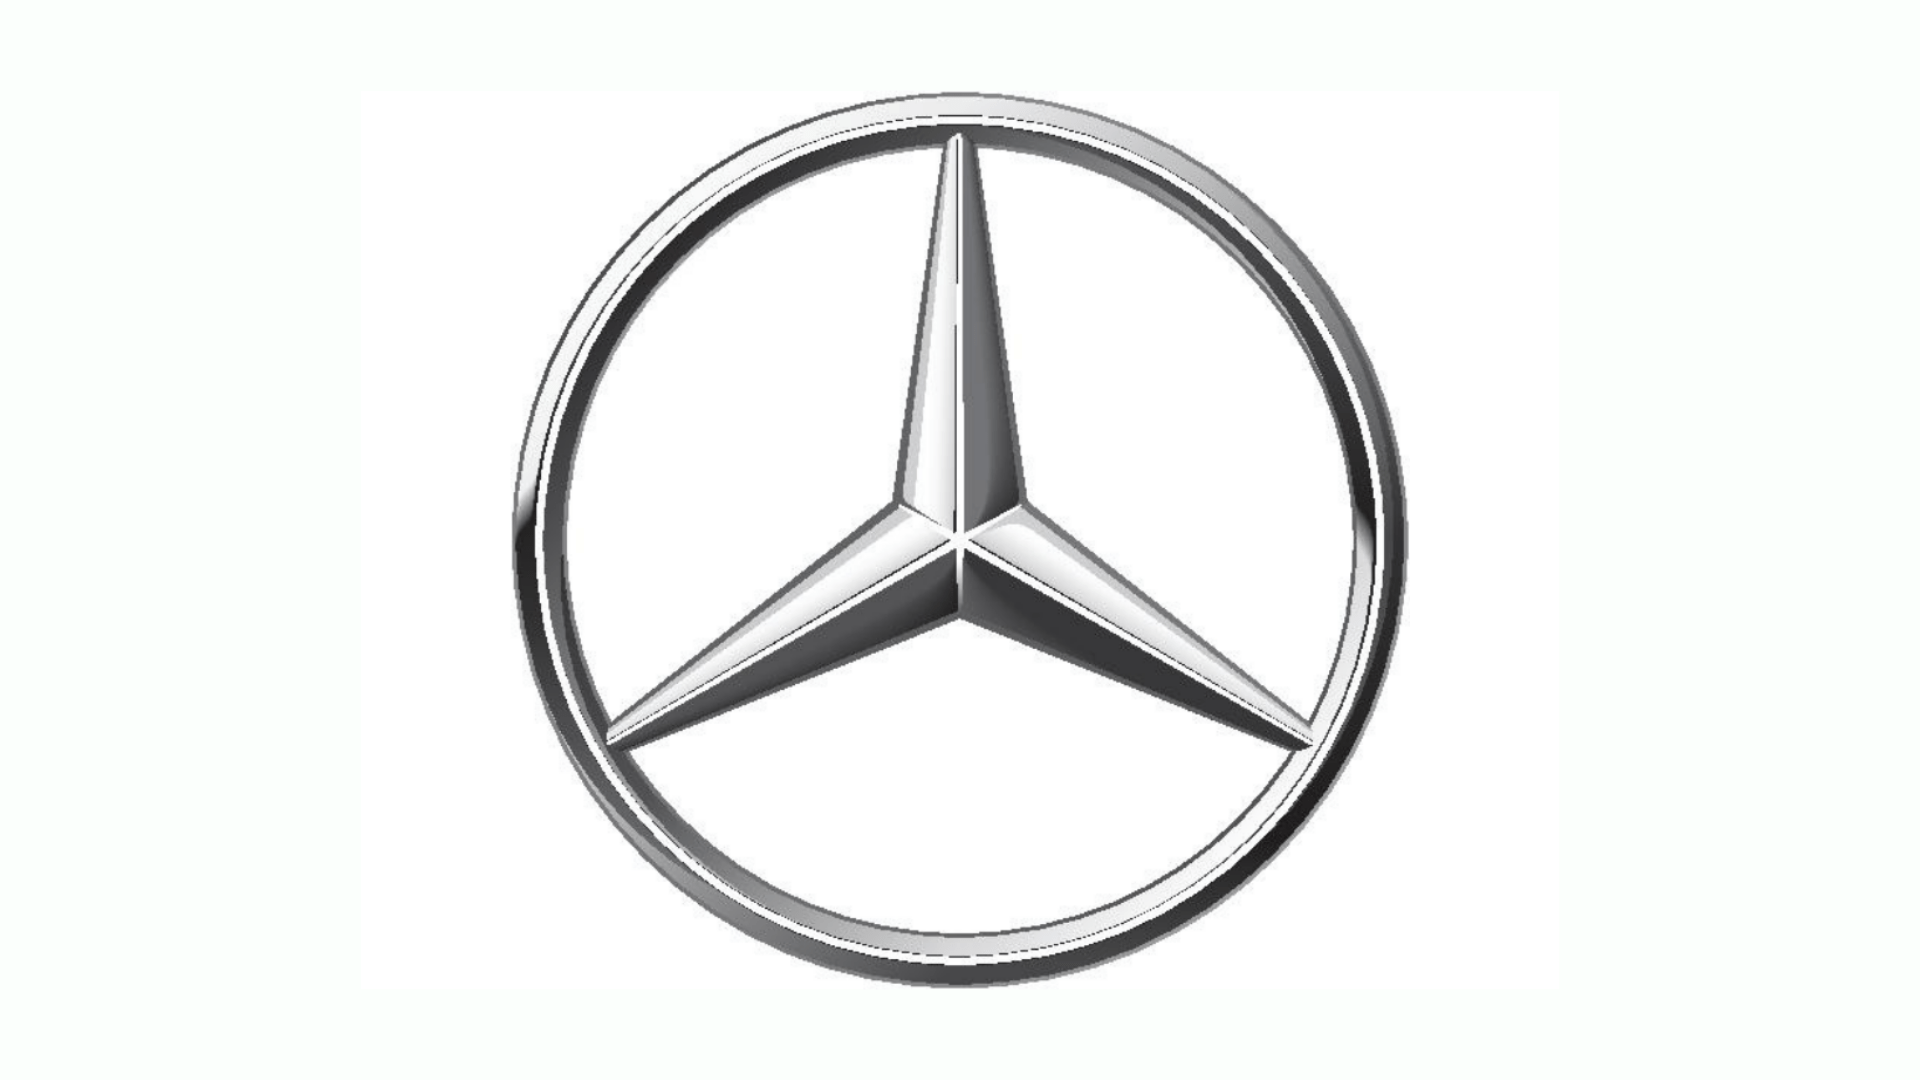 Preferred Member Rates With Mercedes-Benz Canada